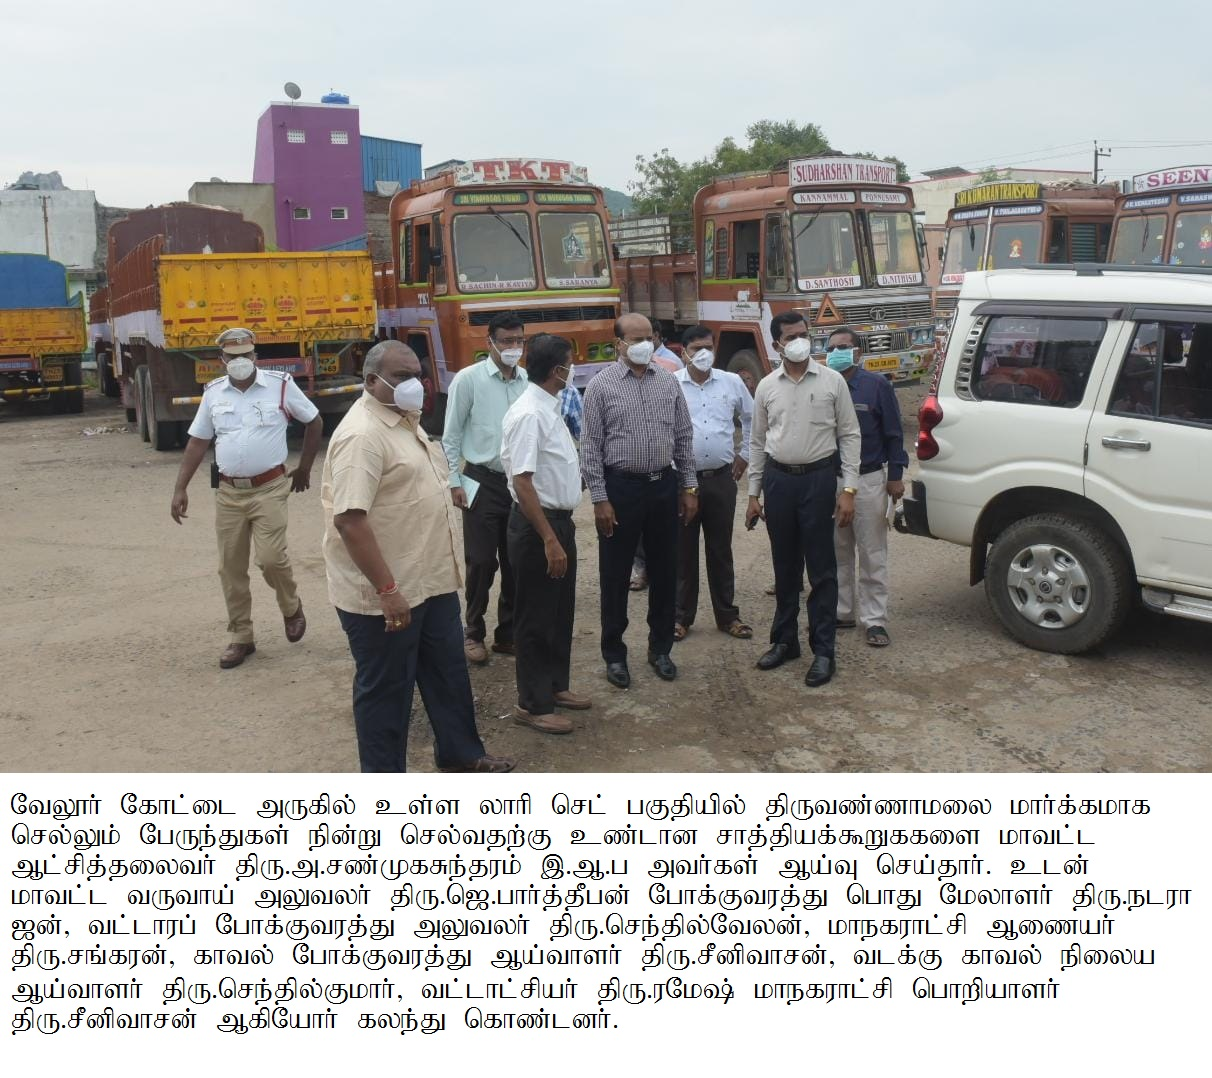 District Collector Inspected the Temporary Bus Stand 30-09-2020